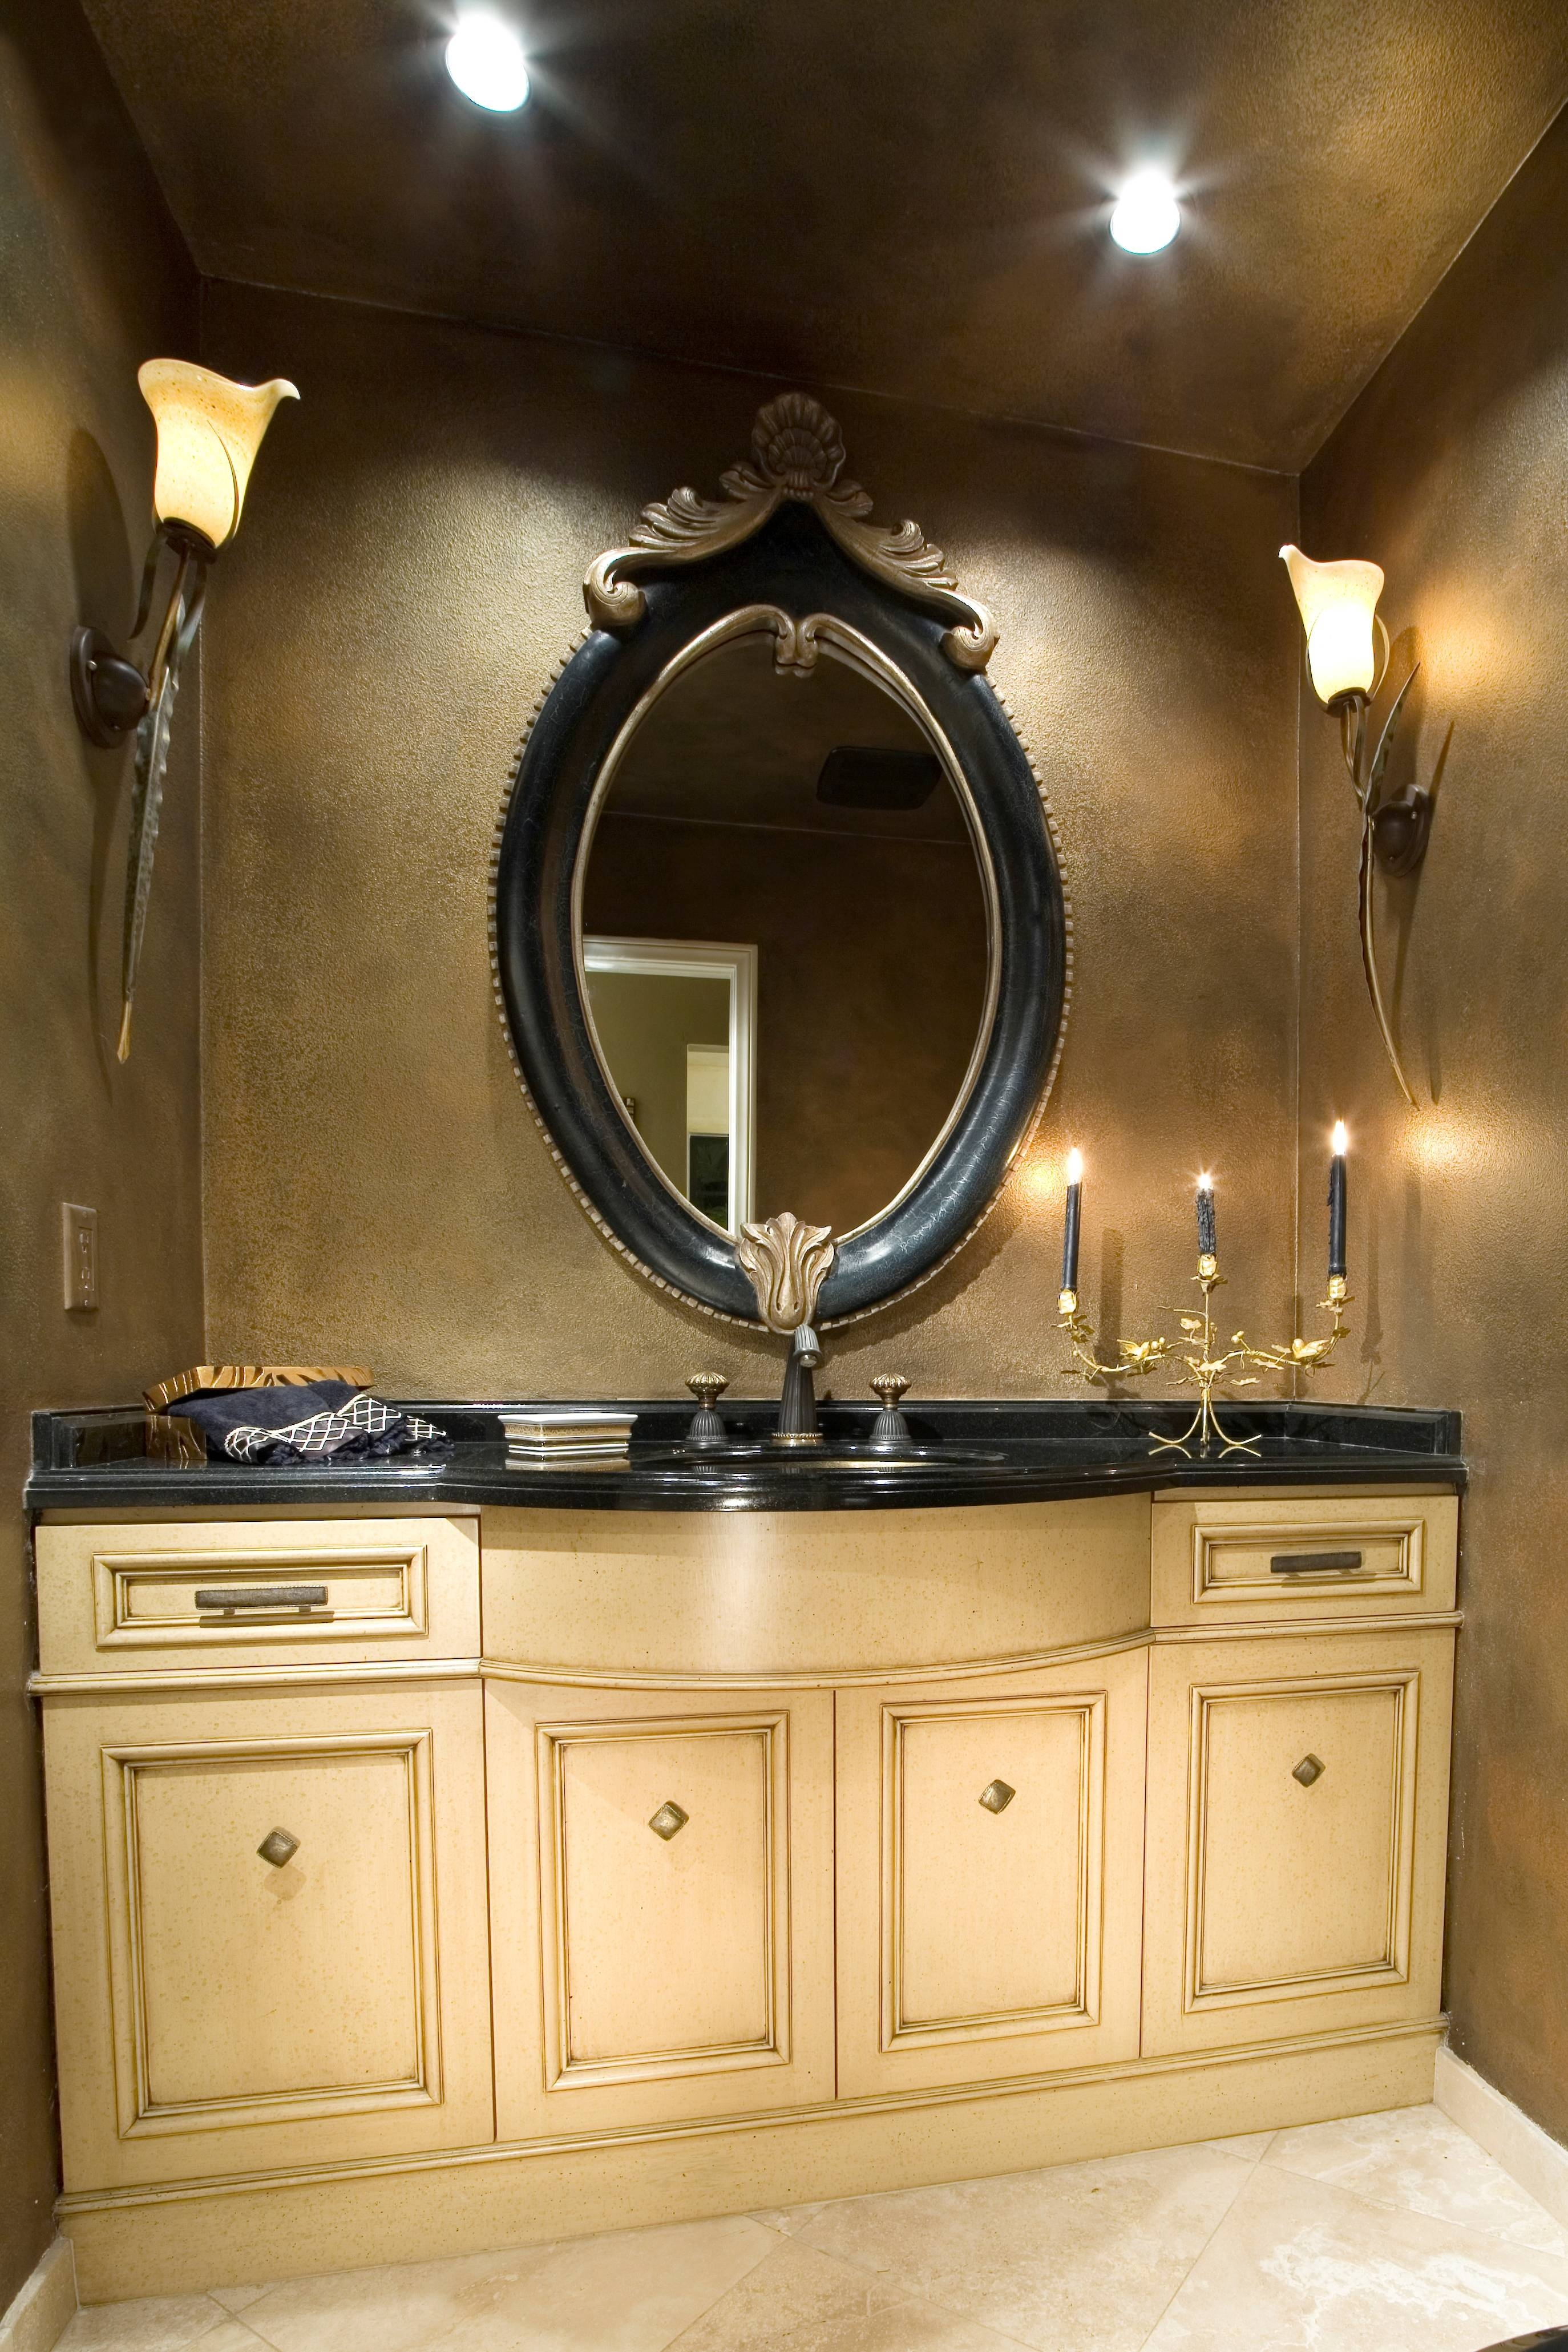 Wondrous Bronze Tone Bathroom In Home Decor Combine Pretty Art throughout Deco Bathroom Mirrors (Image 25 of 25)